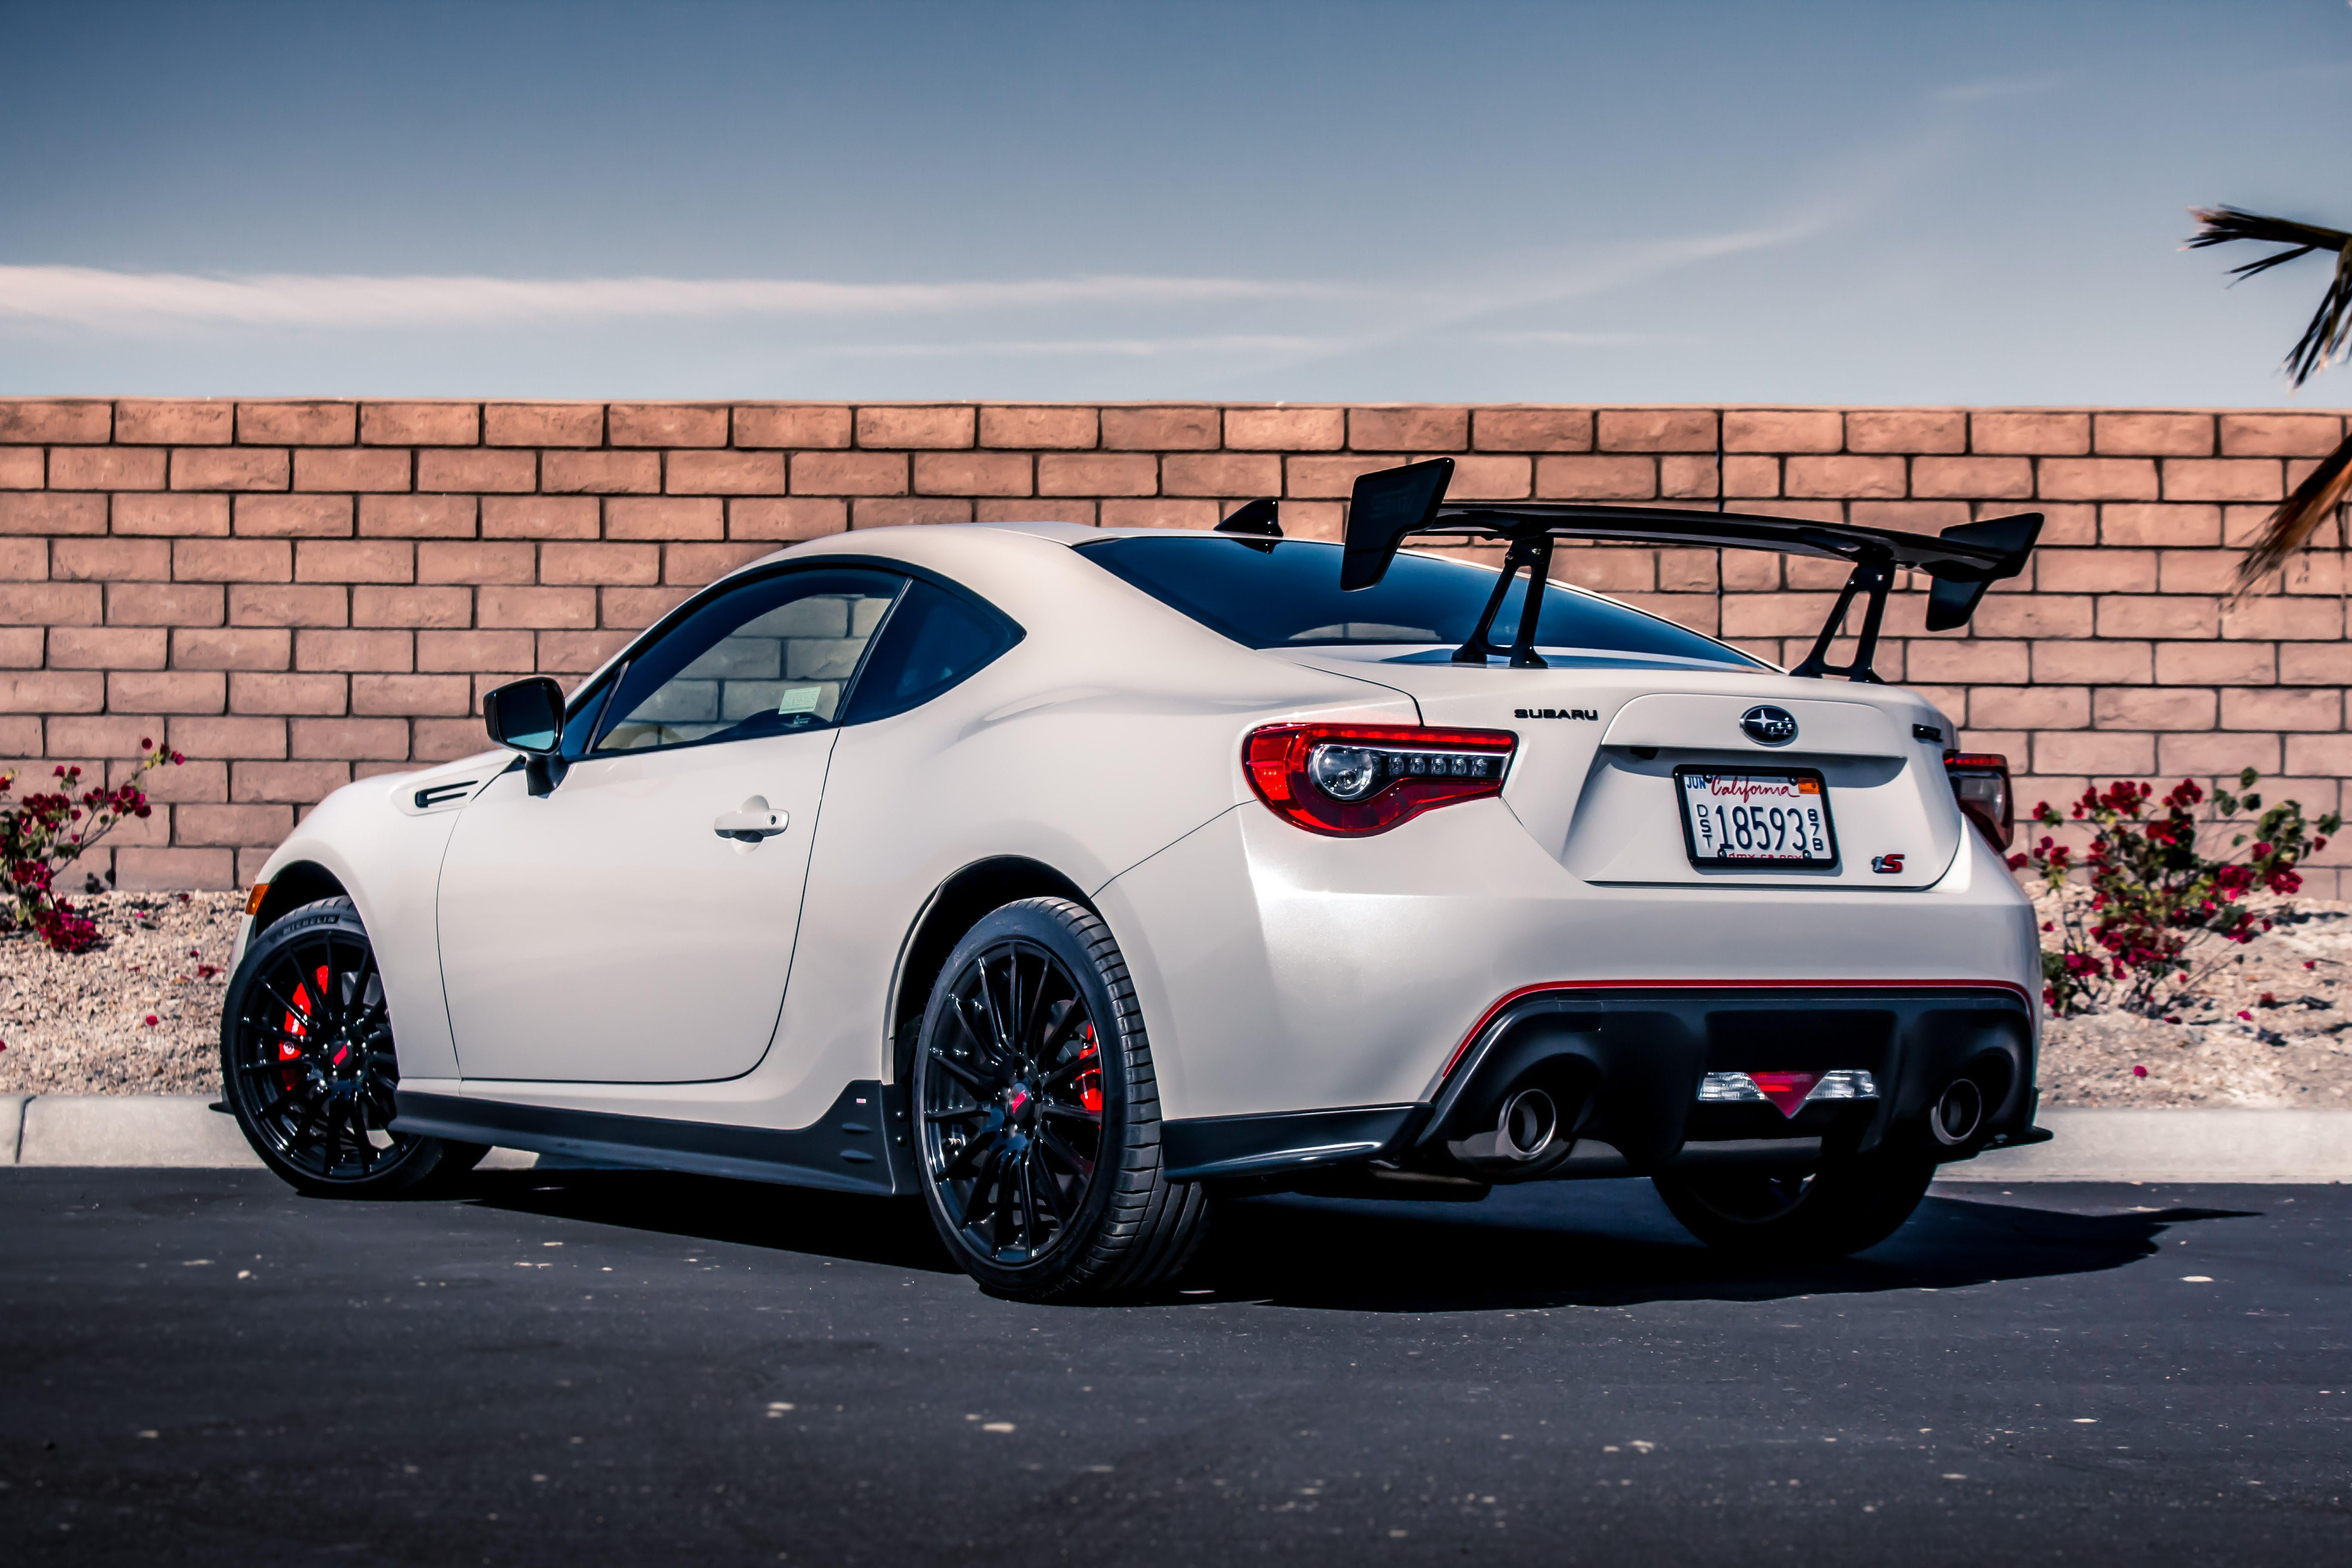 2018 Subaru BRZ tS: A sharper sports coupe reserved for 500 people